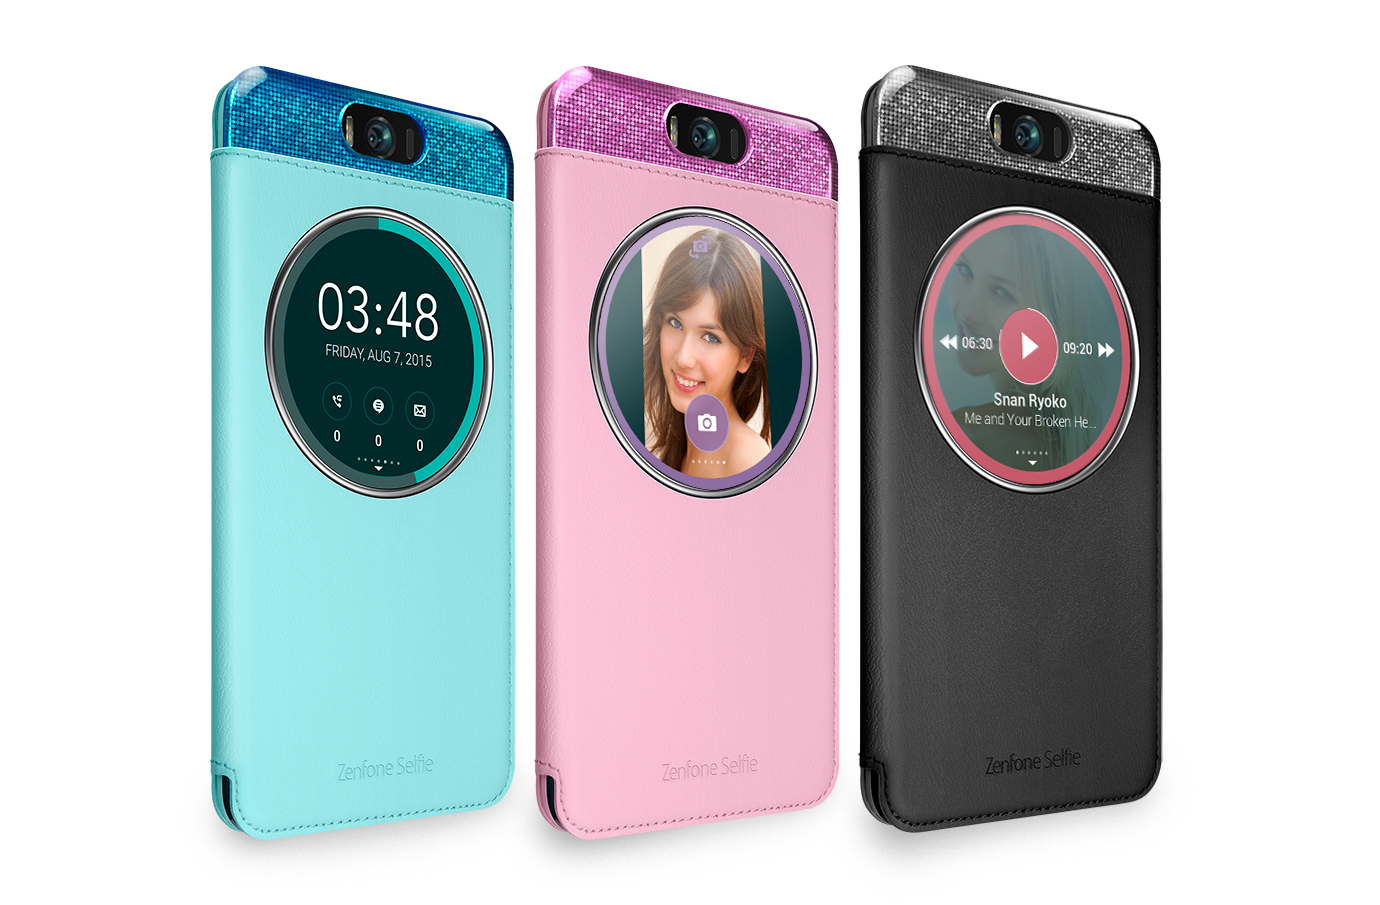 ZenFone Selfie MyView Cover Premium Protection In Intuitive Fashion